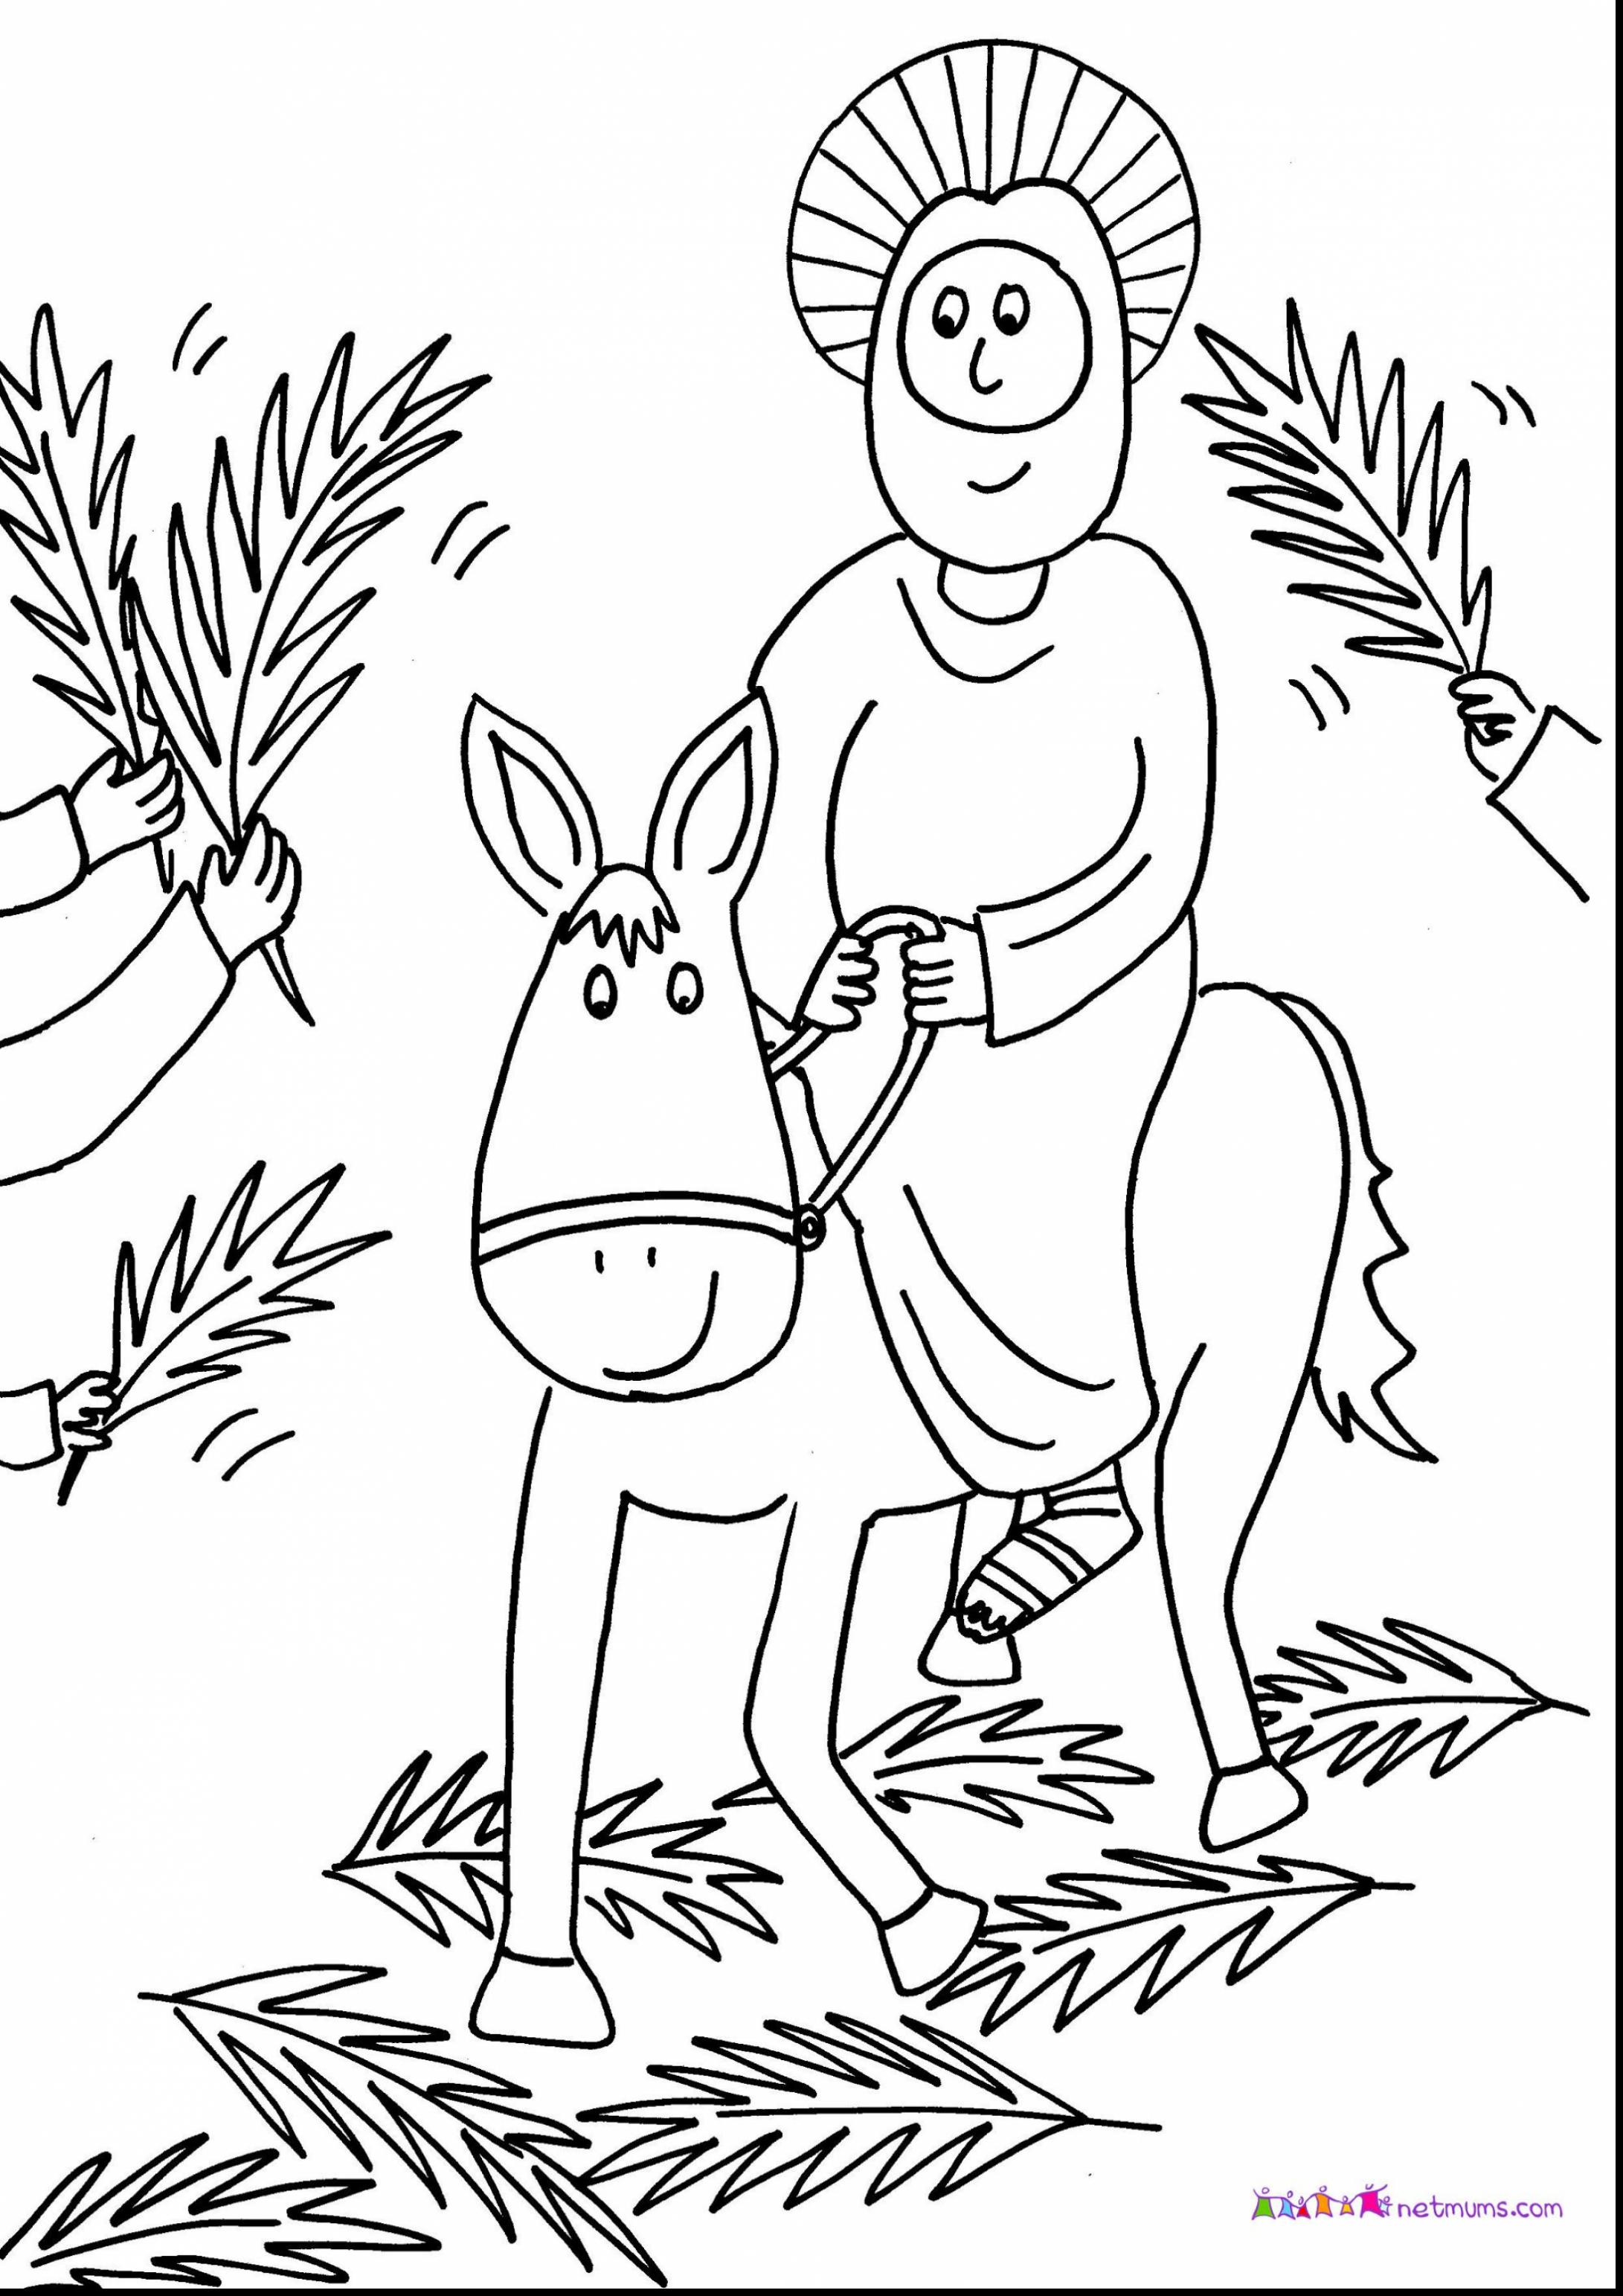 Christian Easter Coloring Pages Printable Free At Getdrawingscom